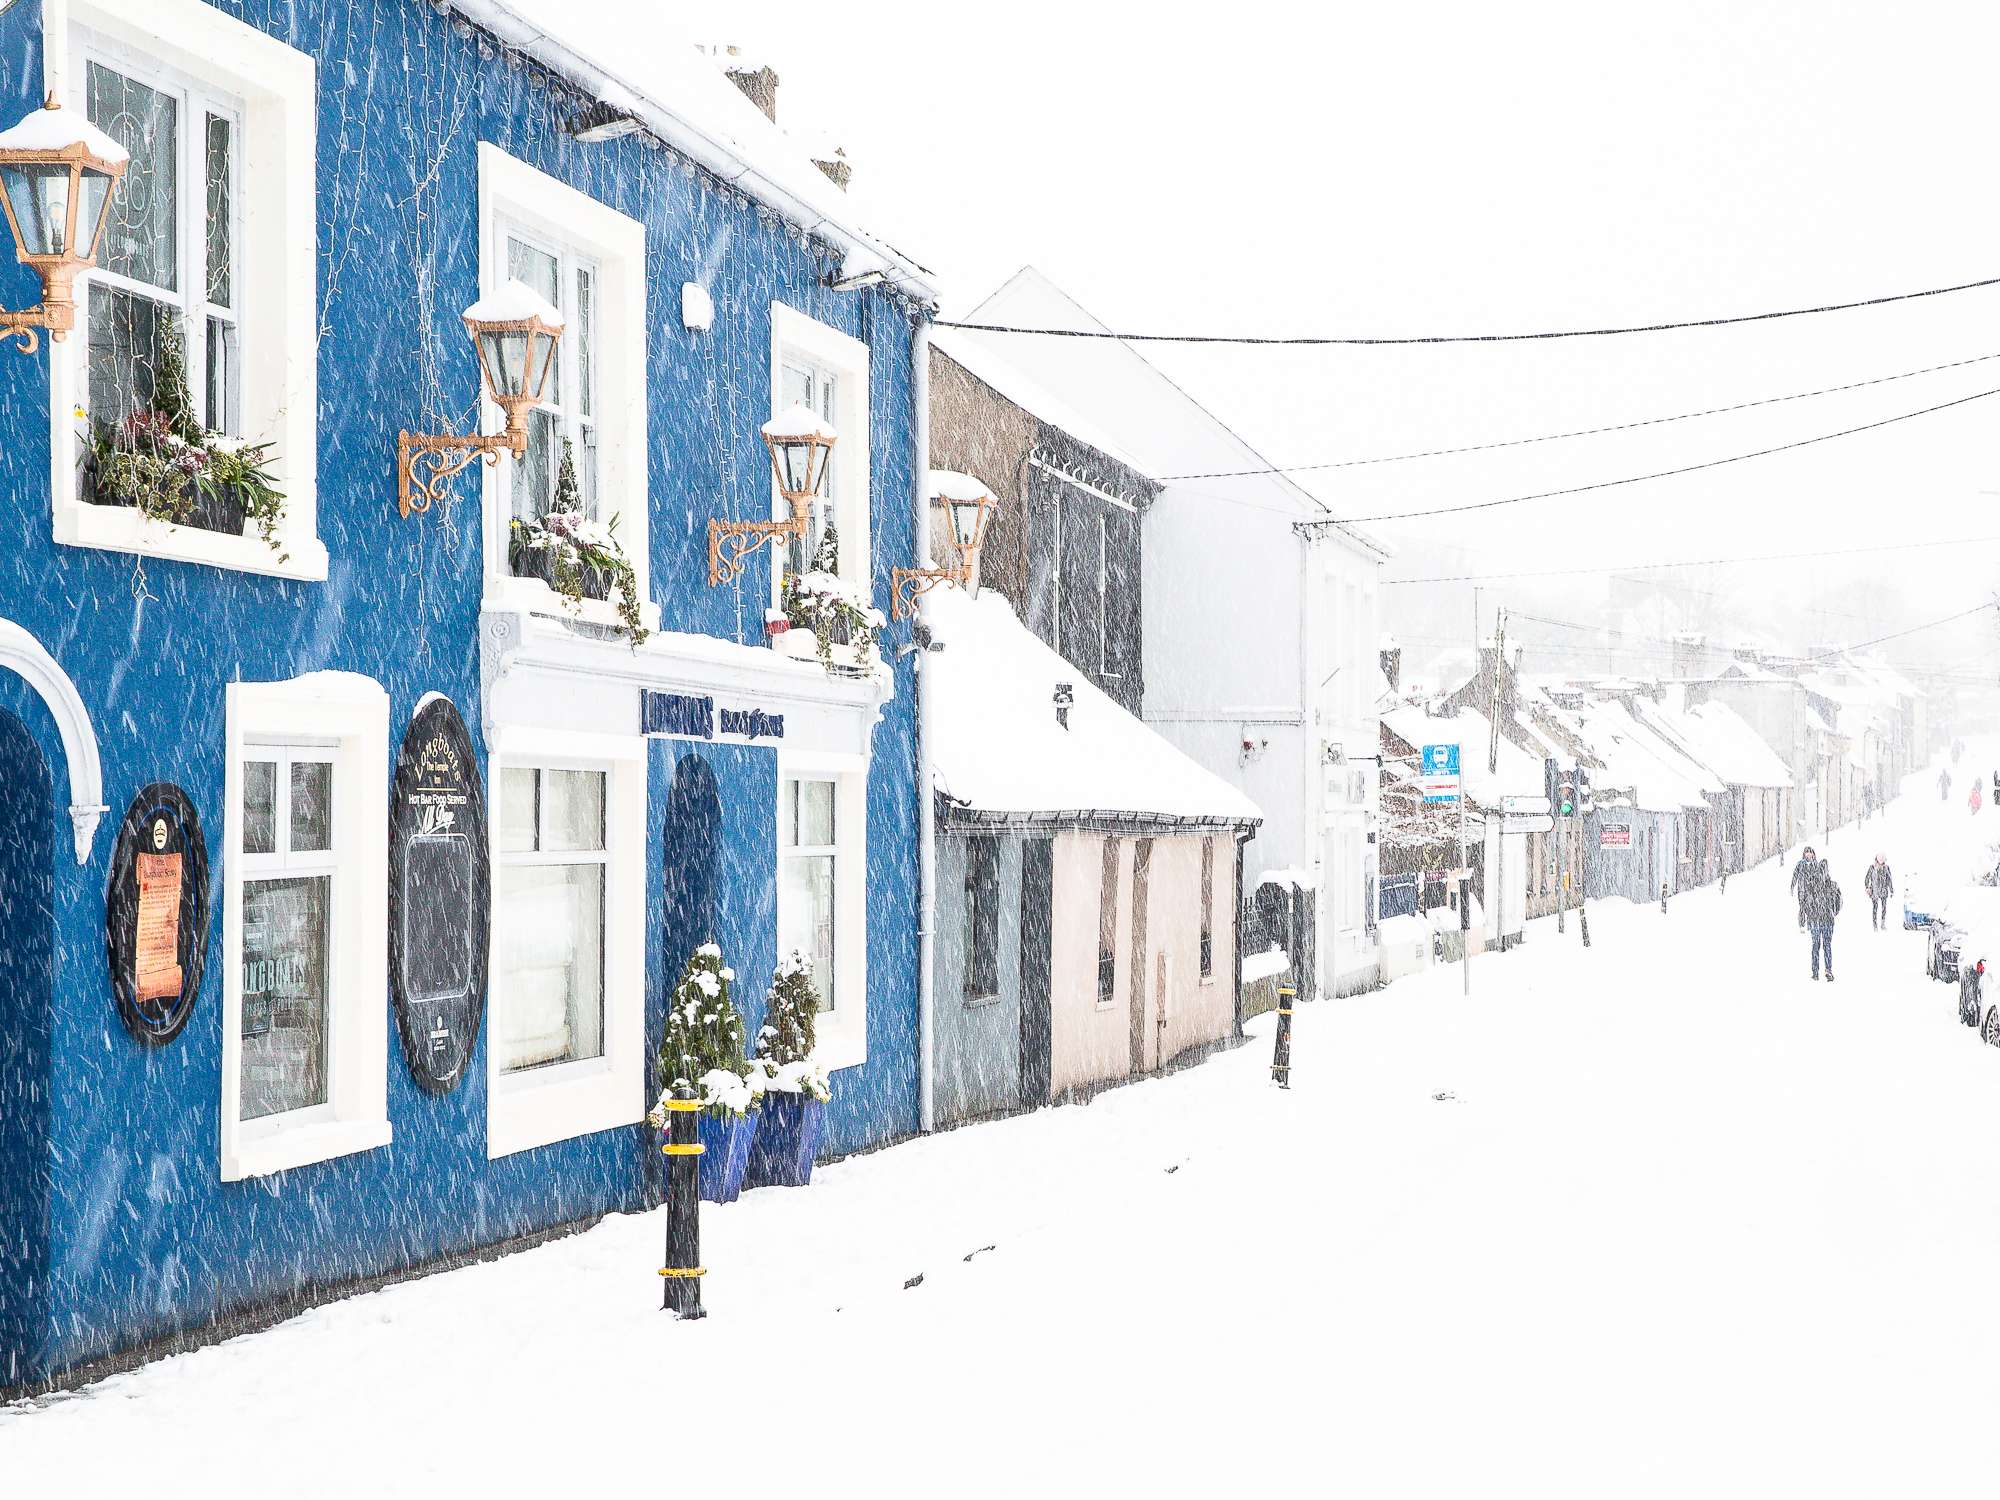 Snow falls on Blackrock Road, Ballintemple, Cork City